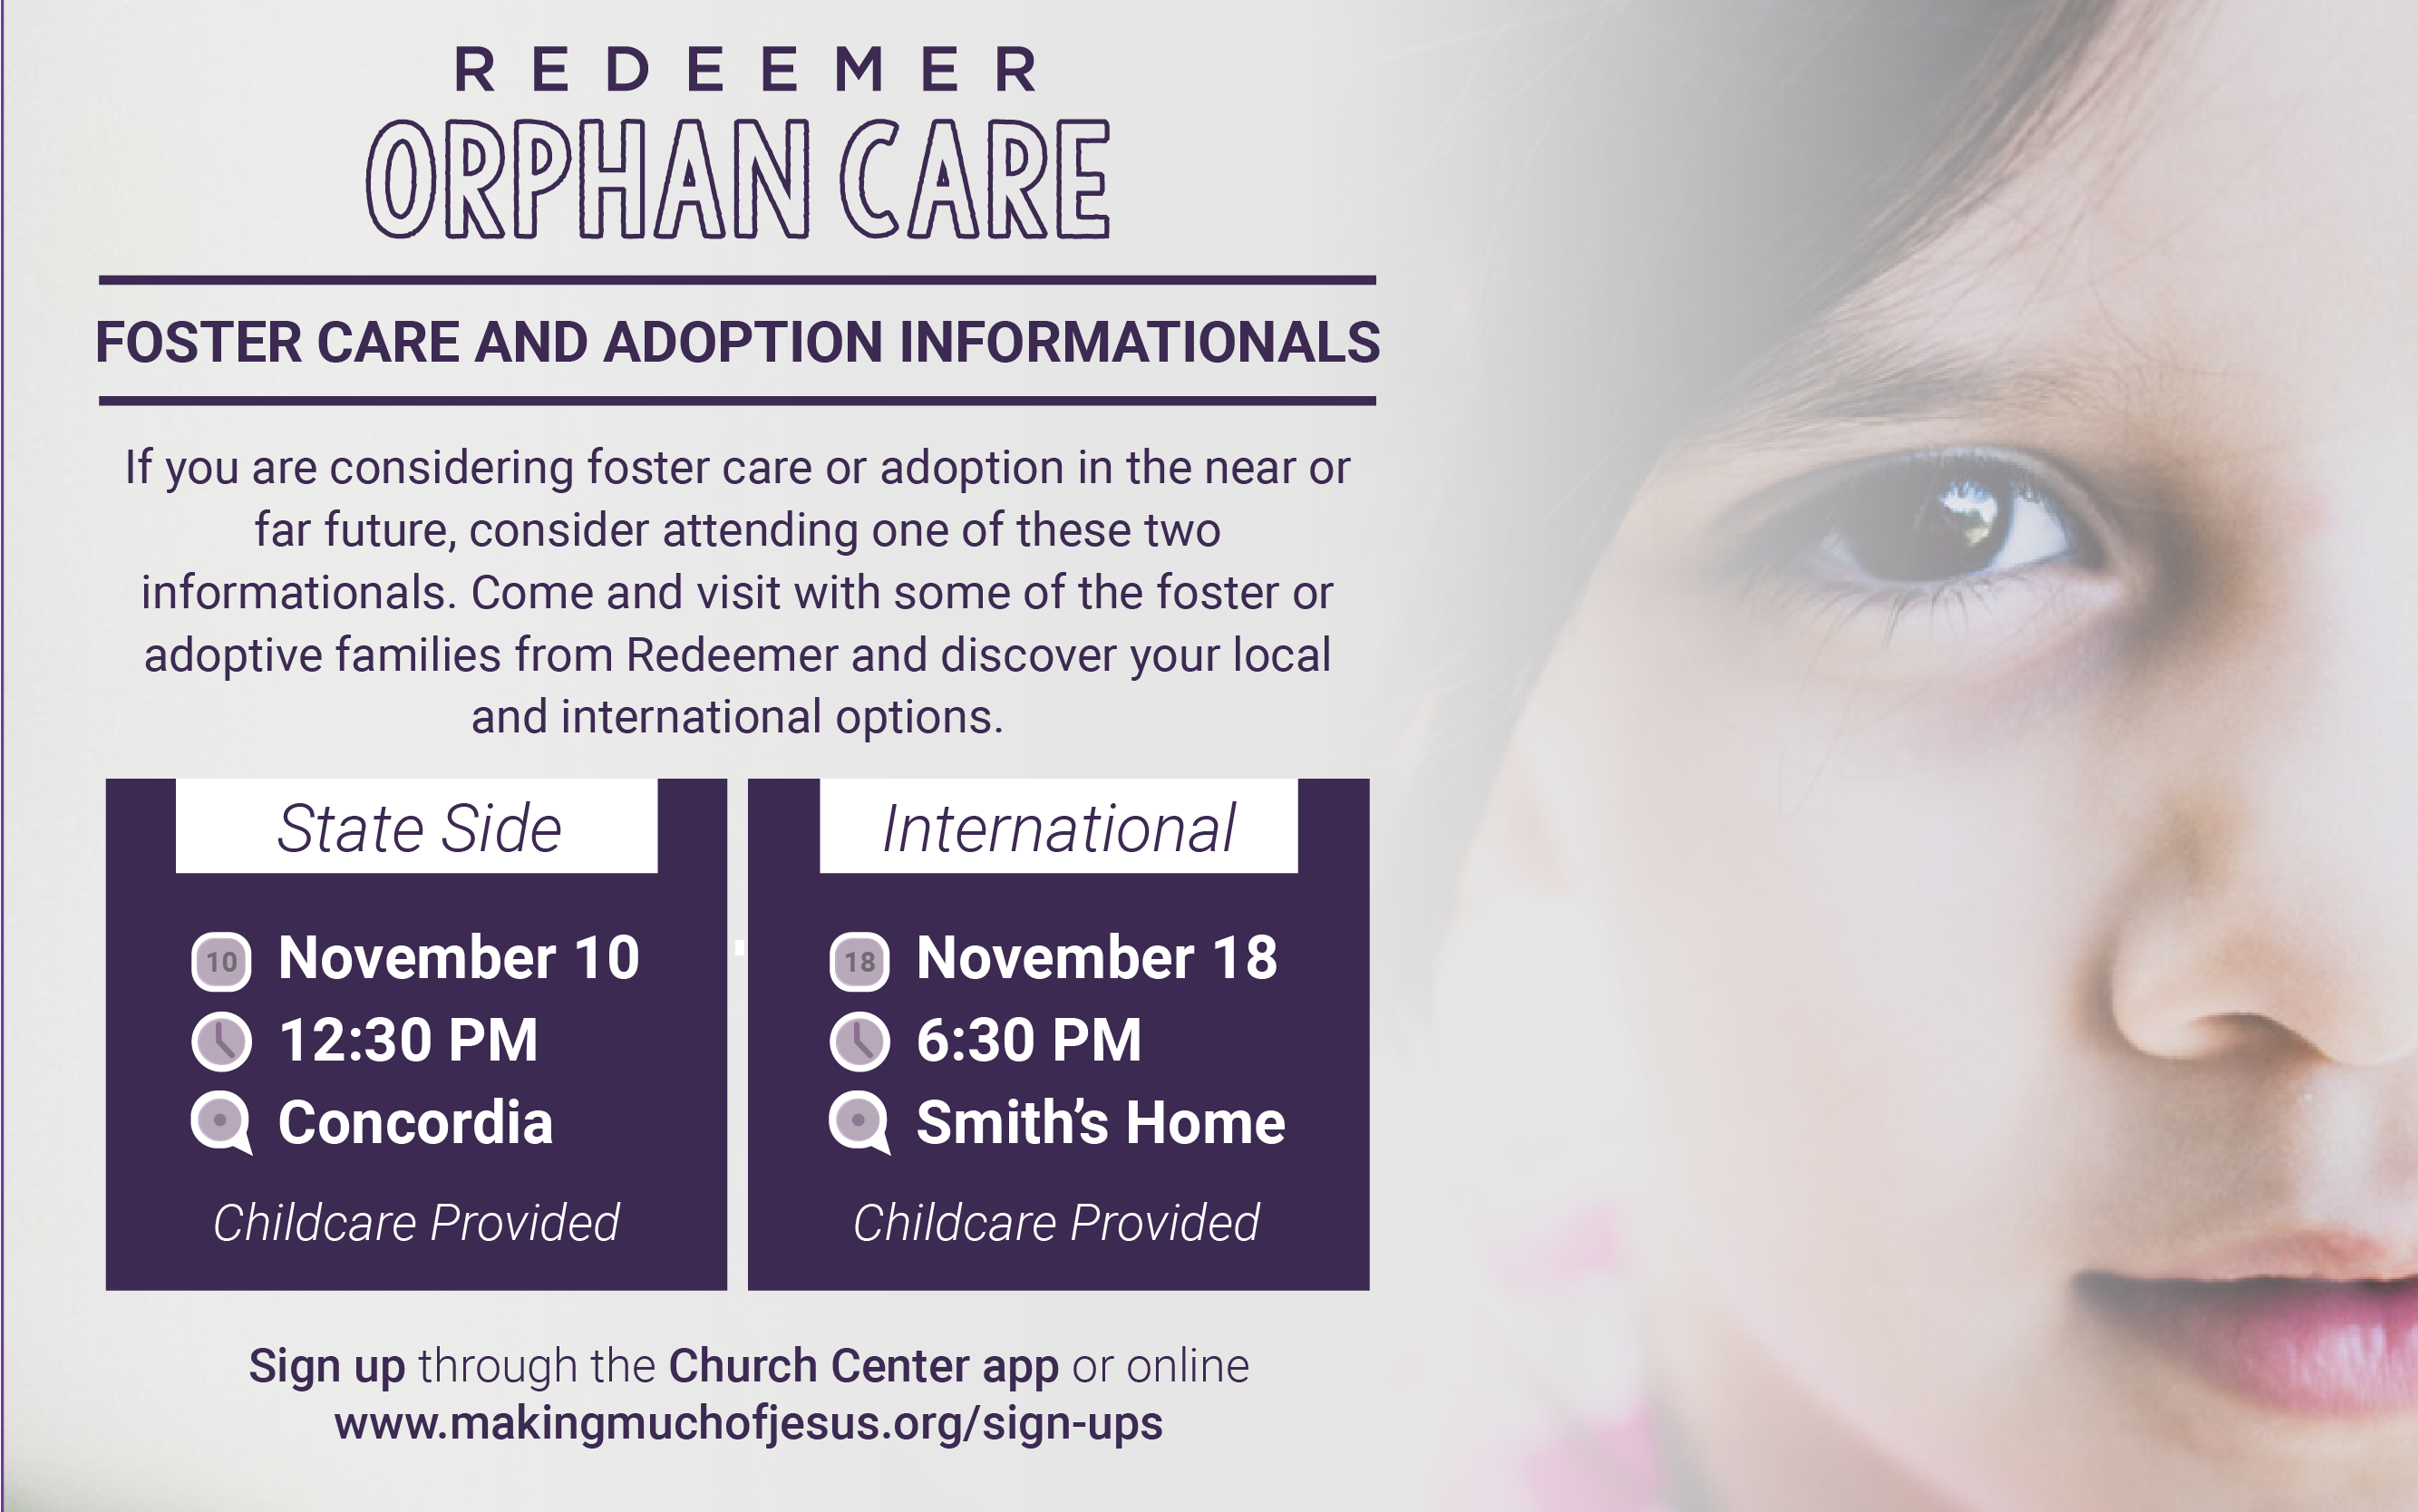 Redeemer Orphan Care Informations-01 image